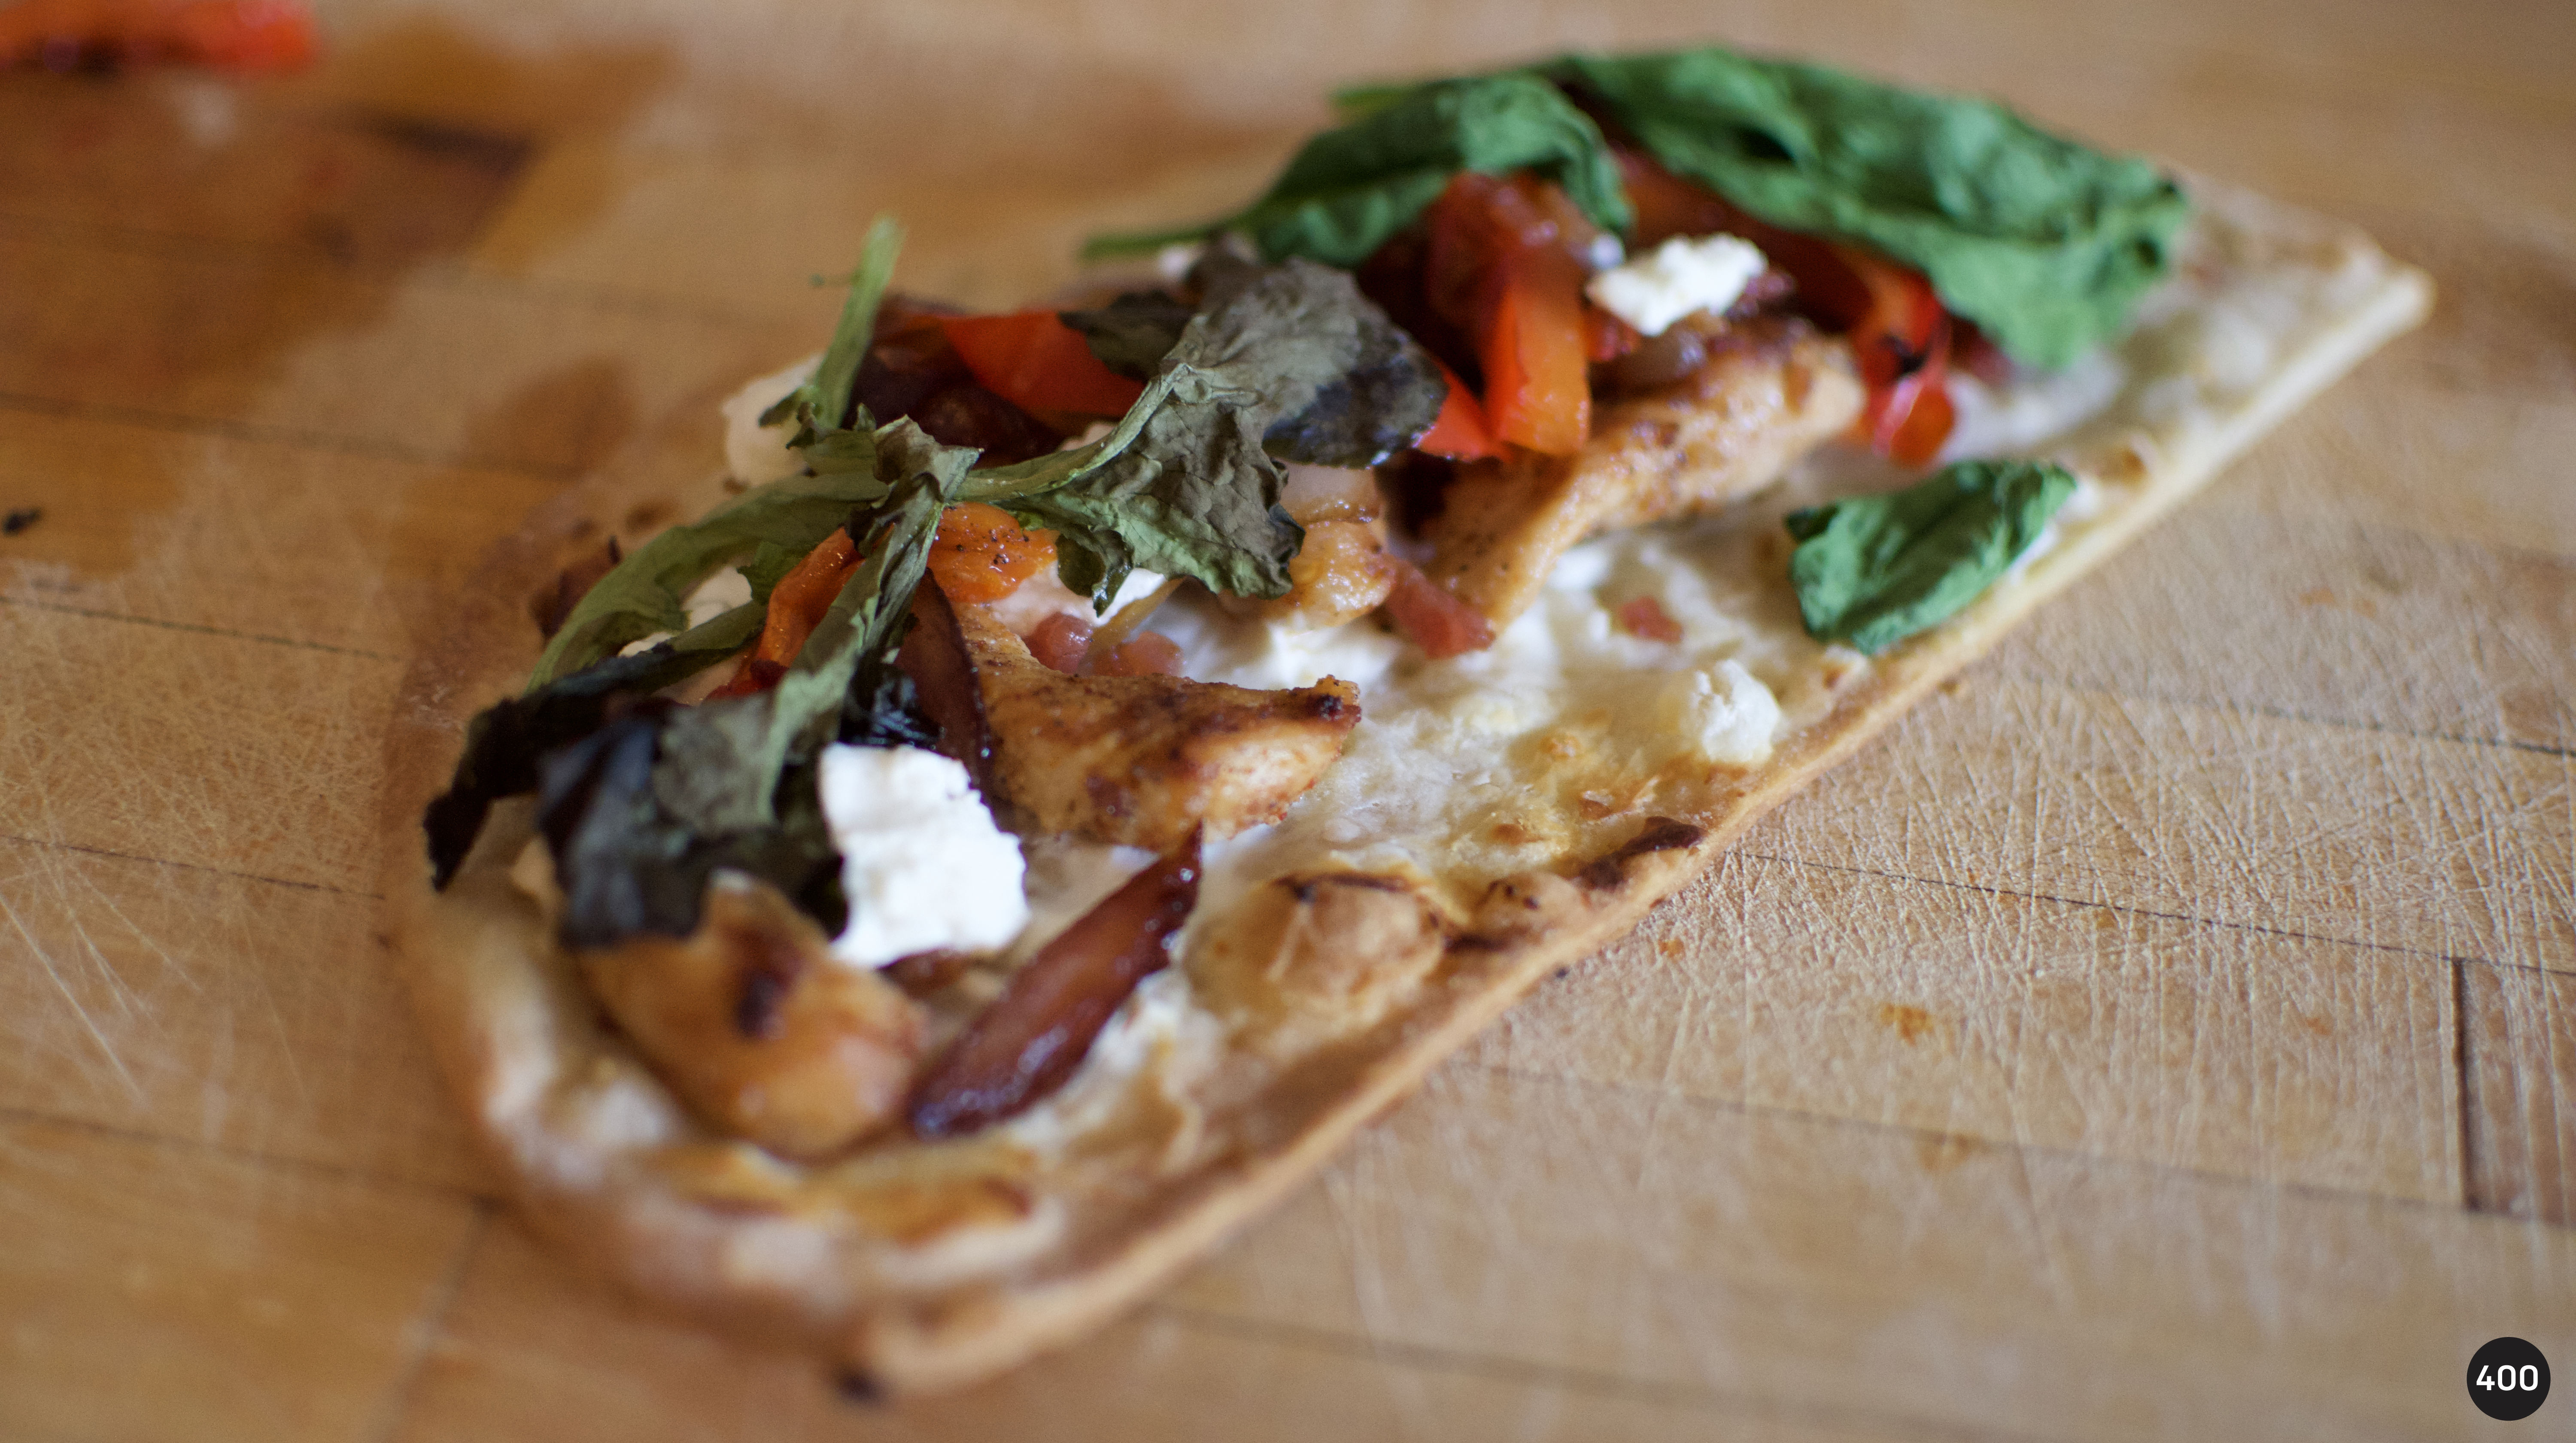 On the Menu: Flat Bread